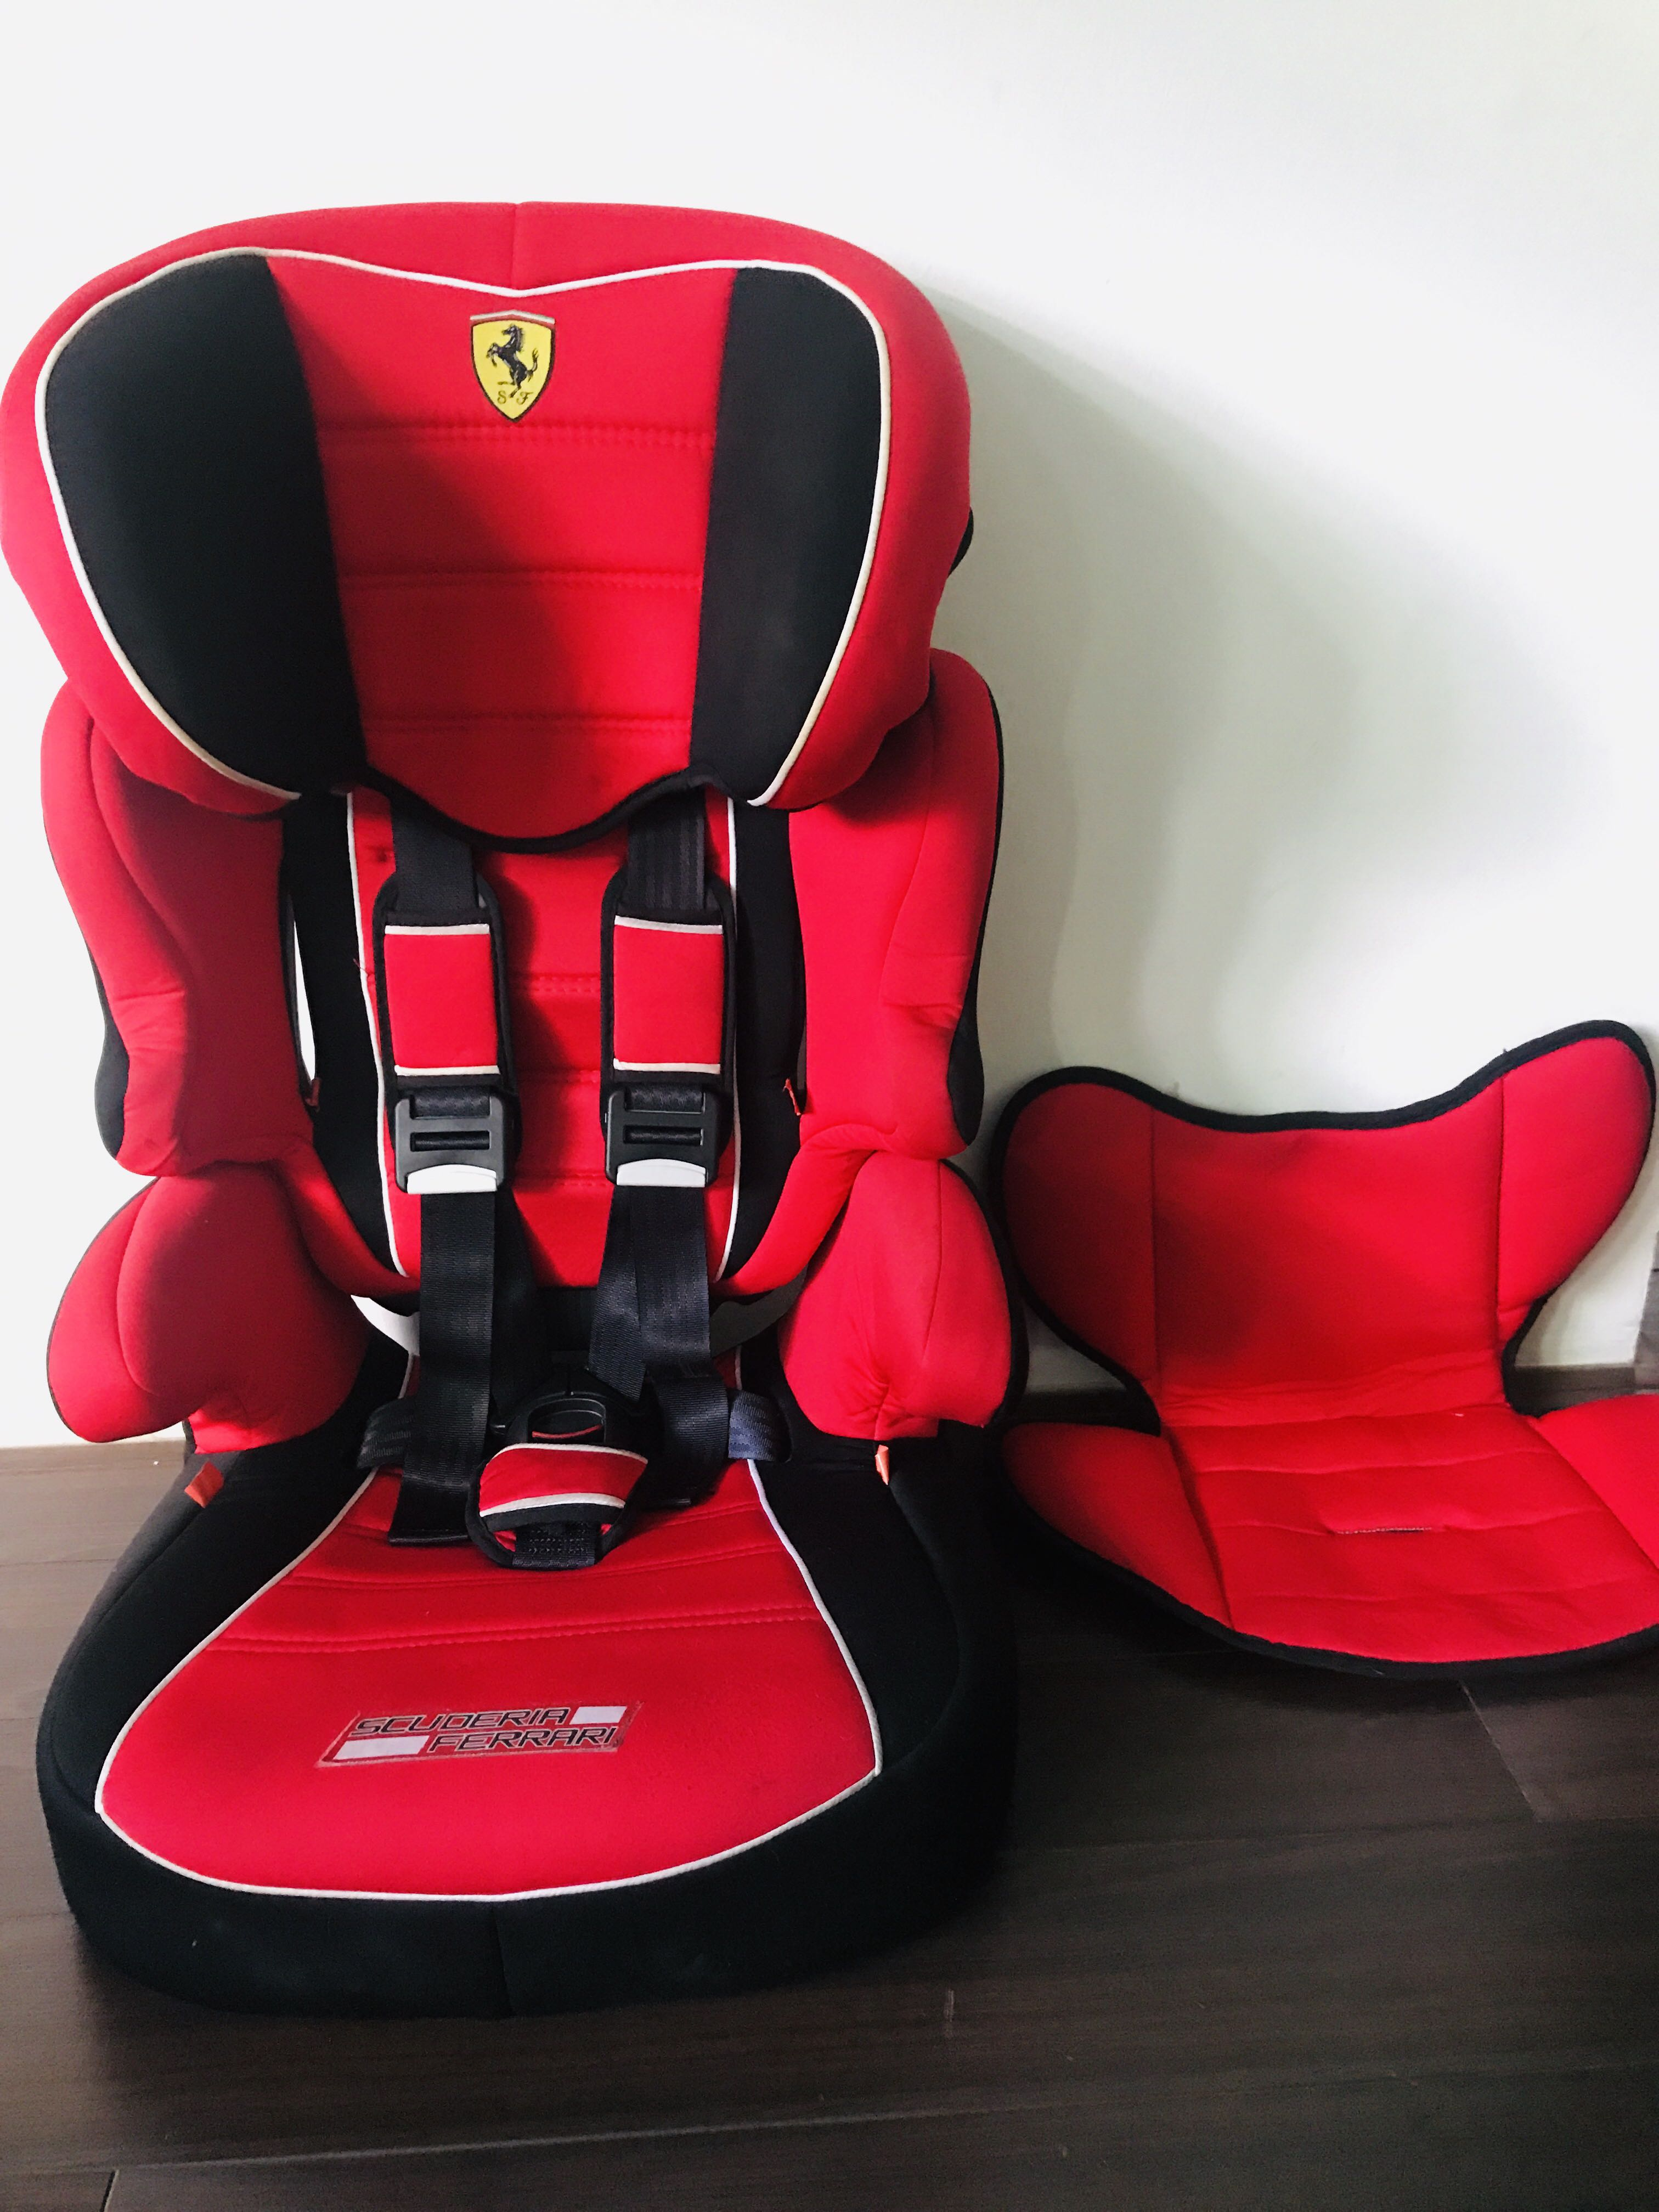 Ferrari Baby Child Car Seat And Booster Seat 2 In 1 Babies Kids Strollers Bags Carriers On Carousell